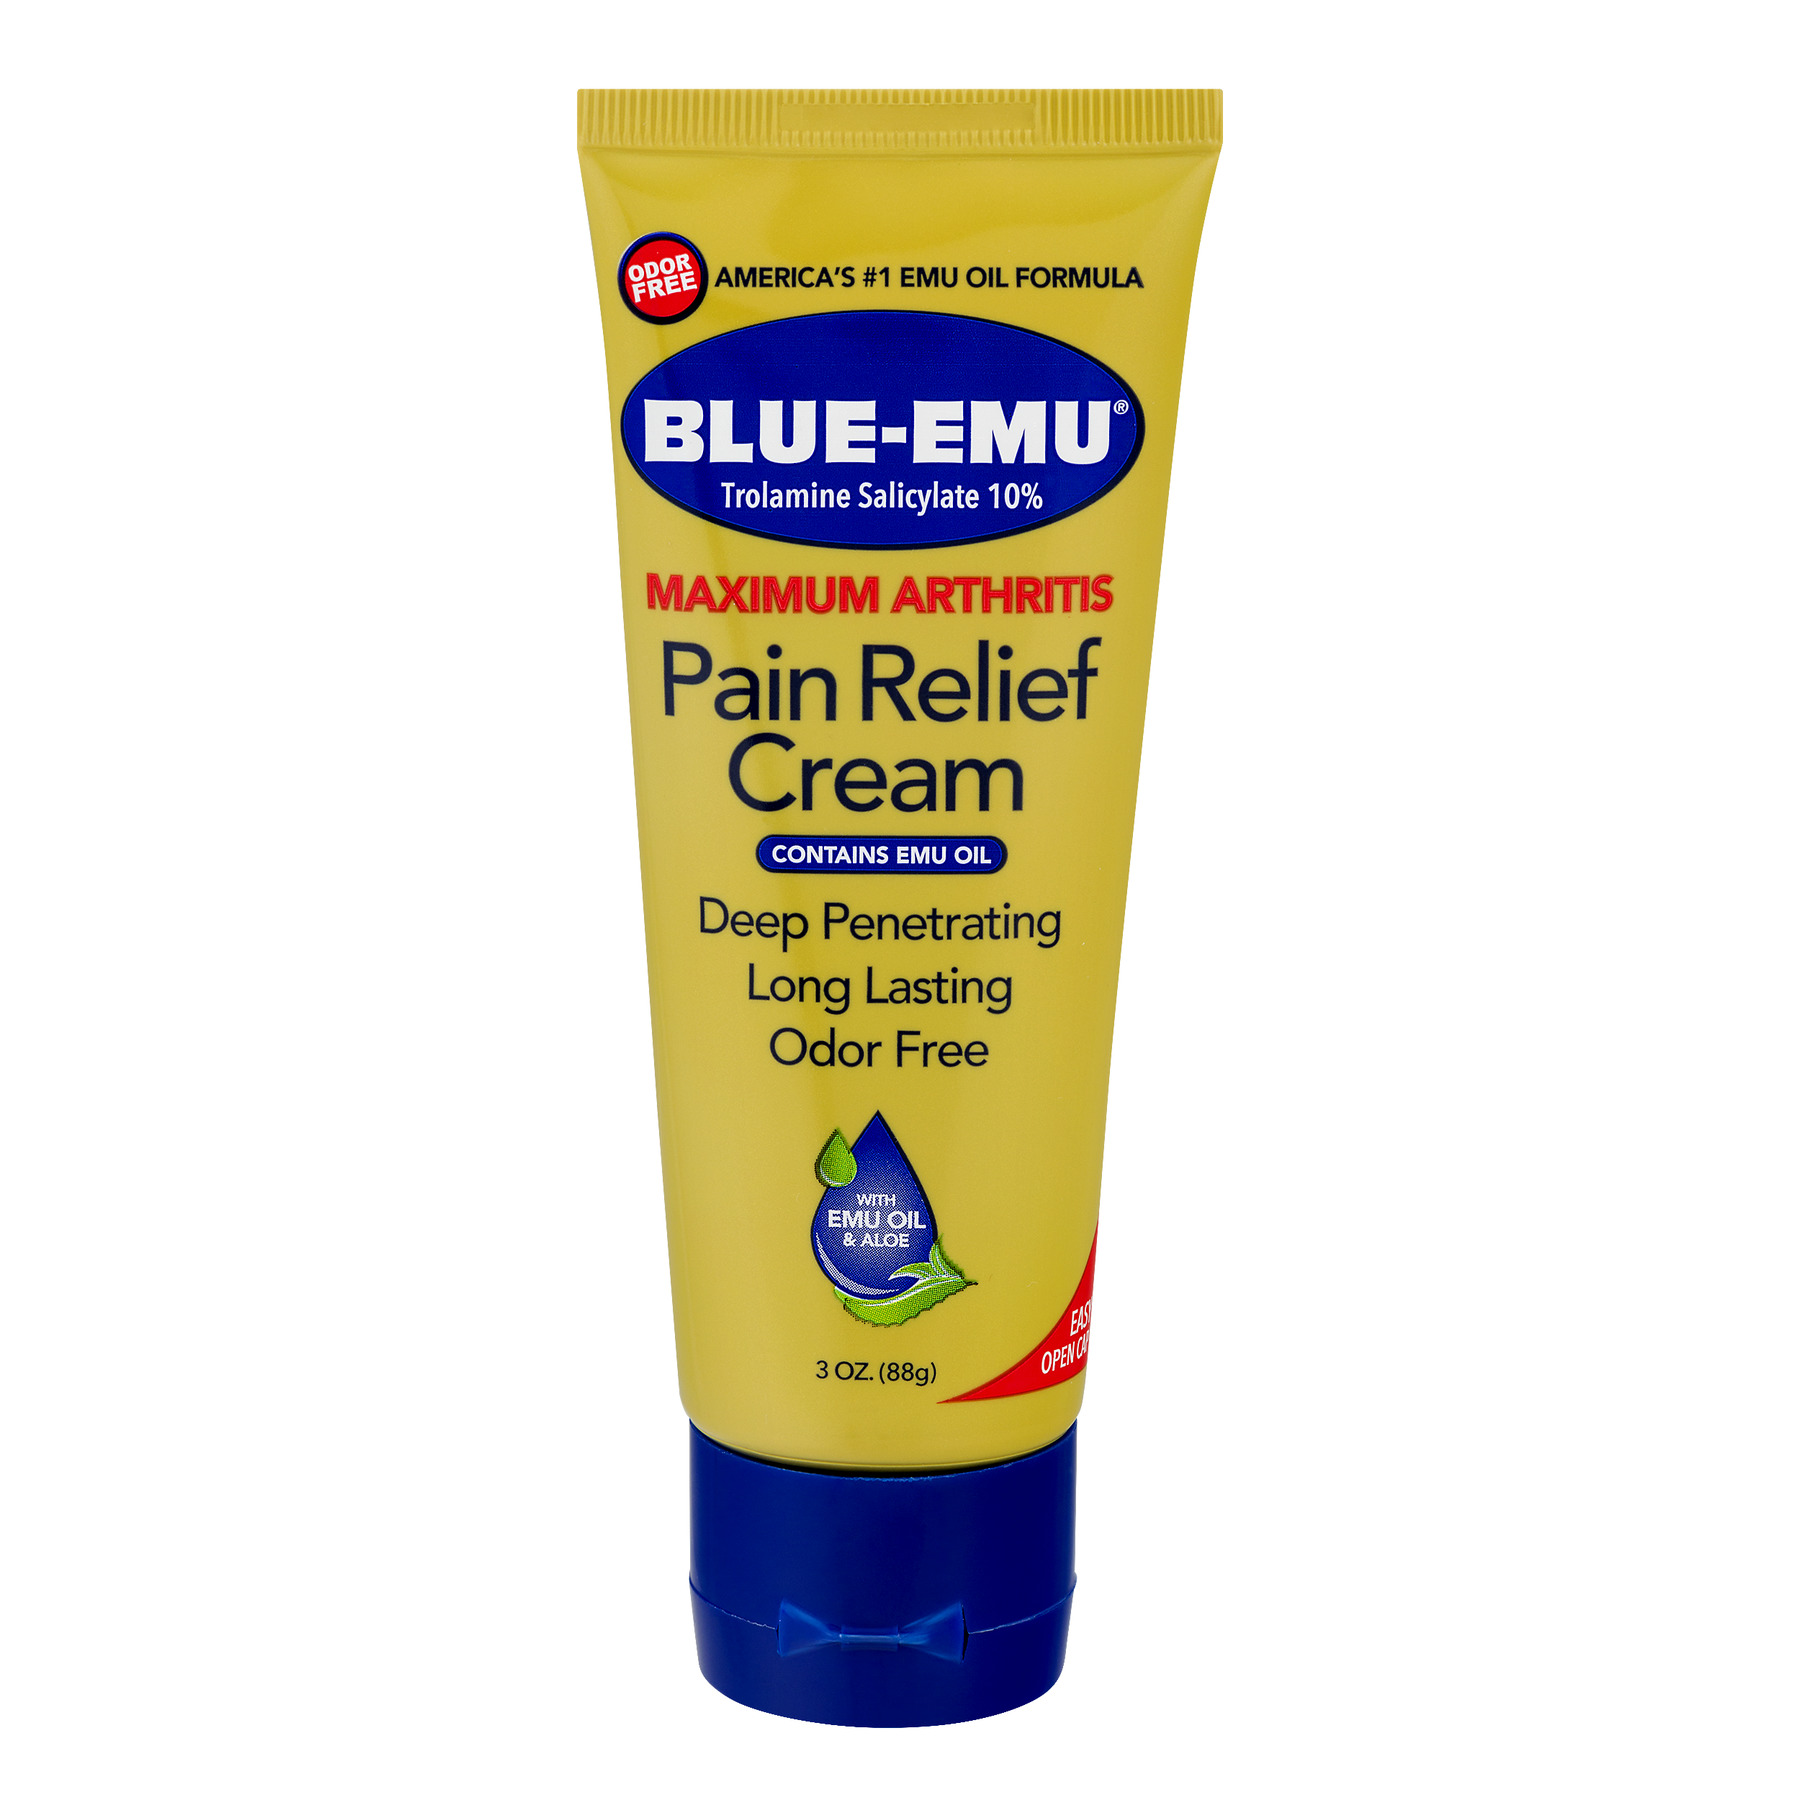 Blue-Emu Maximum Arthritis Pain Relief Cream, 3 oz